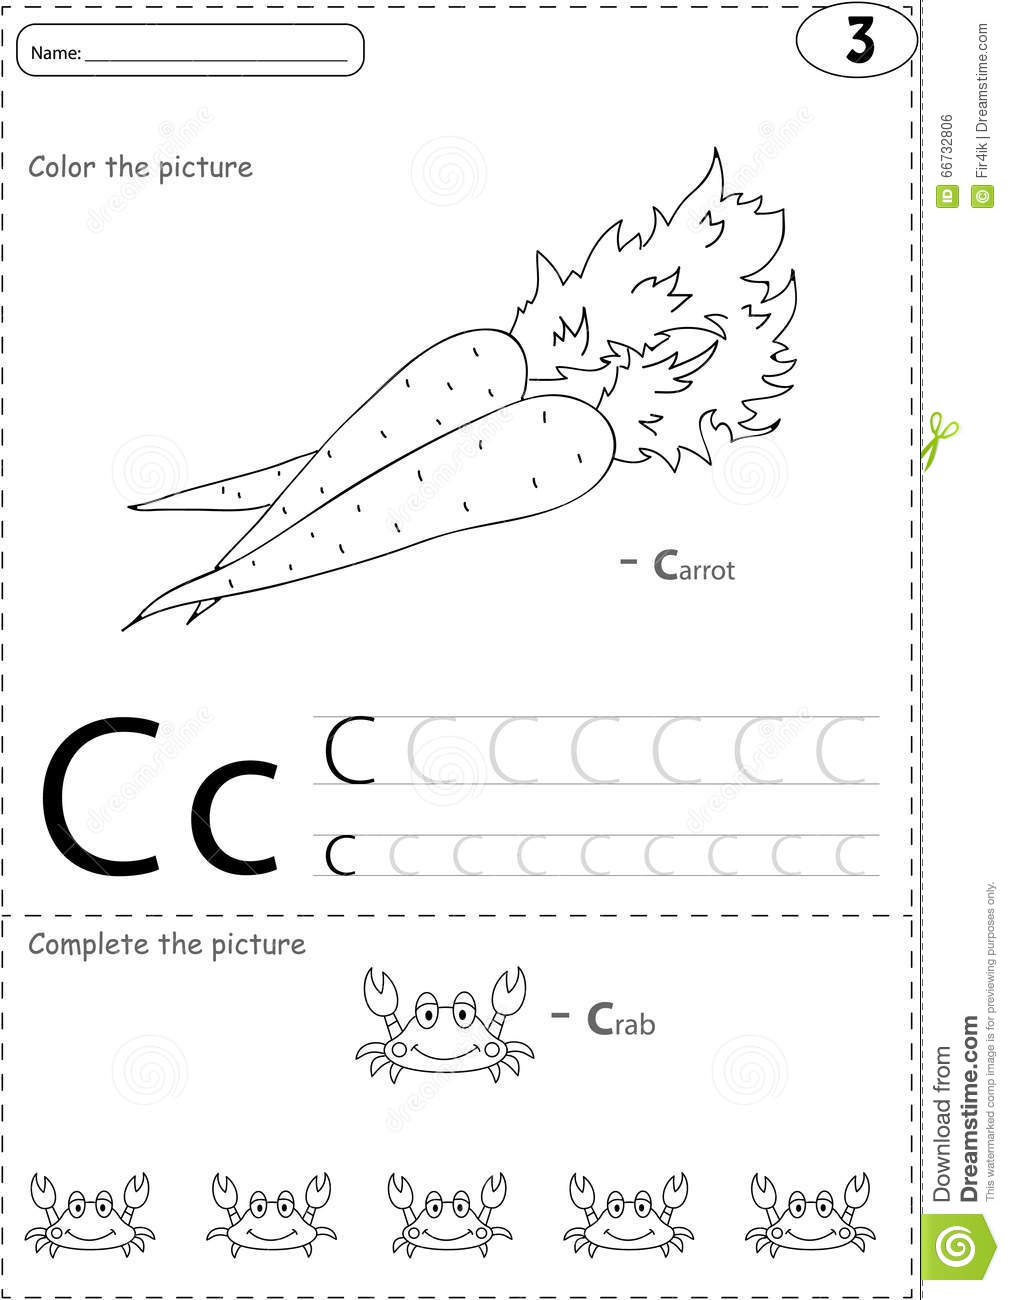 Cartoon Crab Carrot Alphabet Tracing Worksheet Writing Z Coloring Book Educational Game Kids likewise Page Thumb Big in addition In Agml T additionally Wpd A besides Il Xn Bqaq. on printable lined writing paper for kids